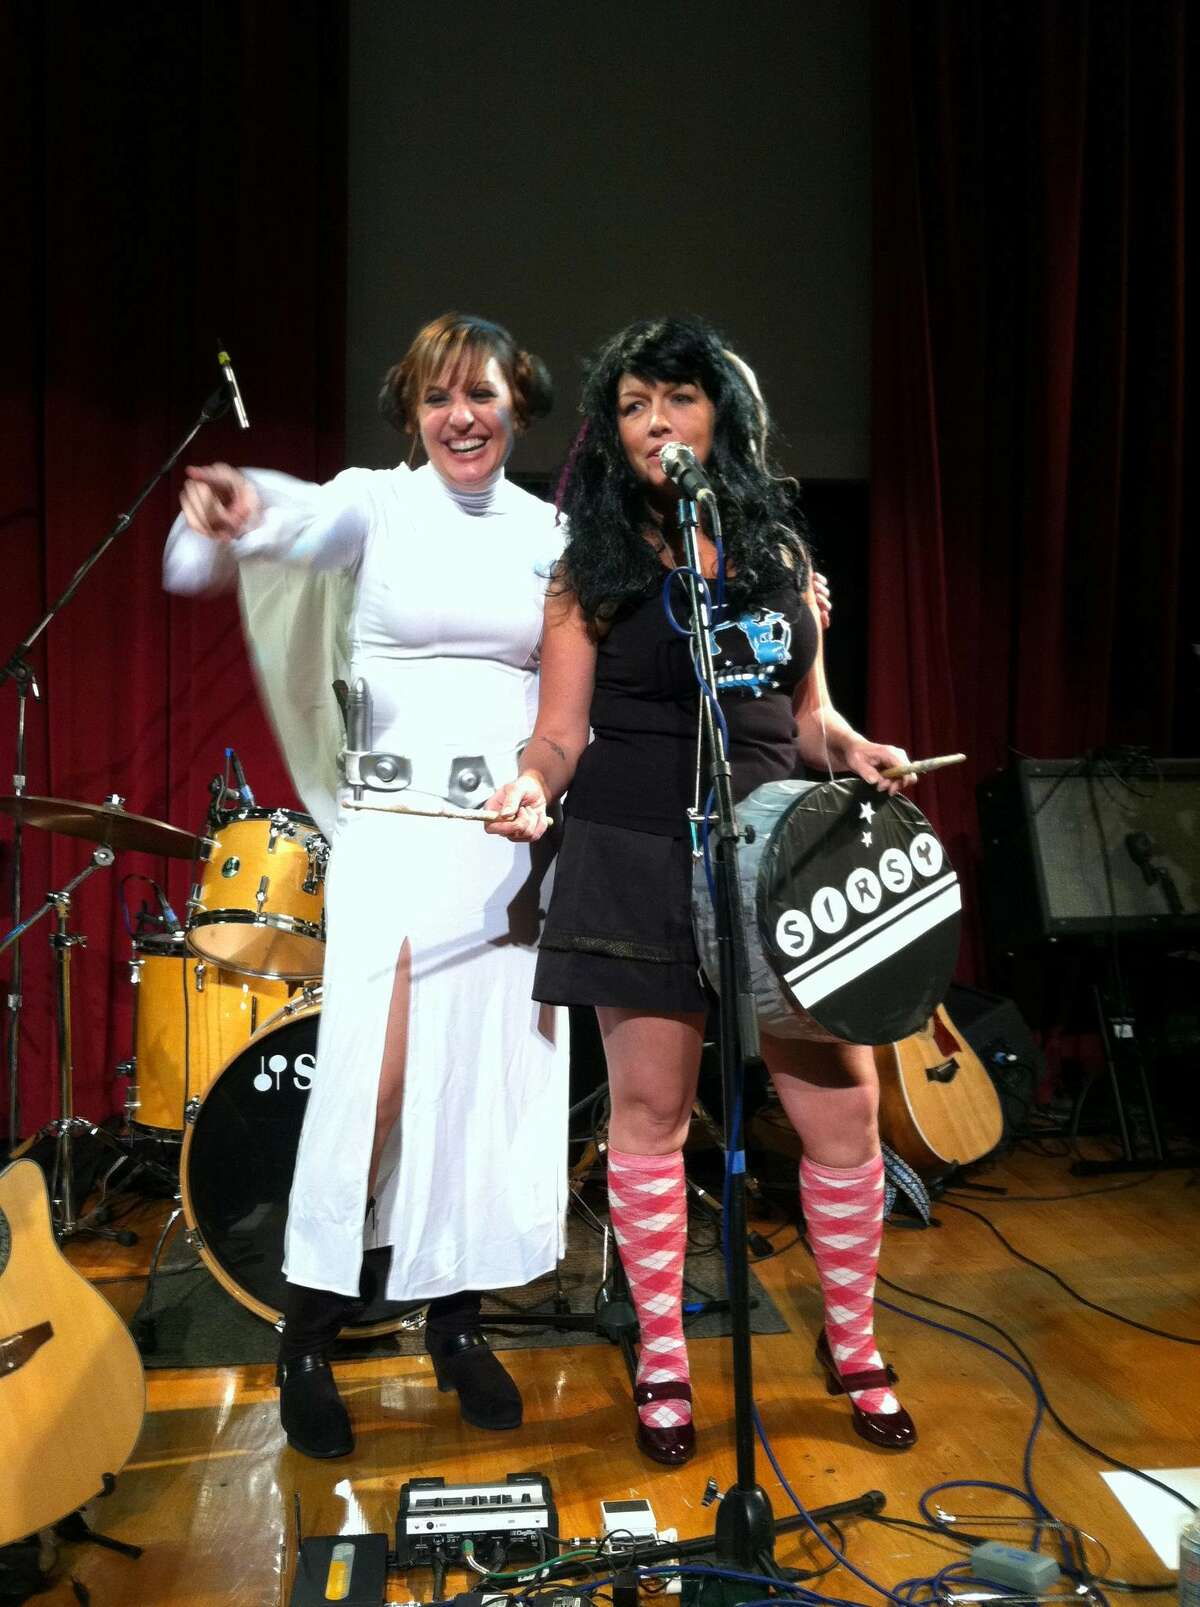 Erin Harkes, dressed as Melanie Krahmer of Sirsy, and Melanie, dressed as Princess Leia from Star Wars, at a Halloween show in 2011. (Photo provided)